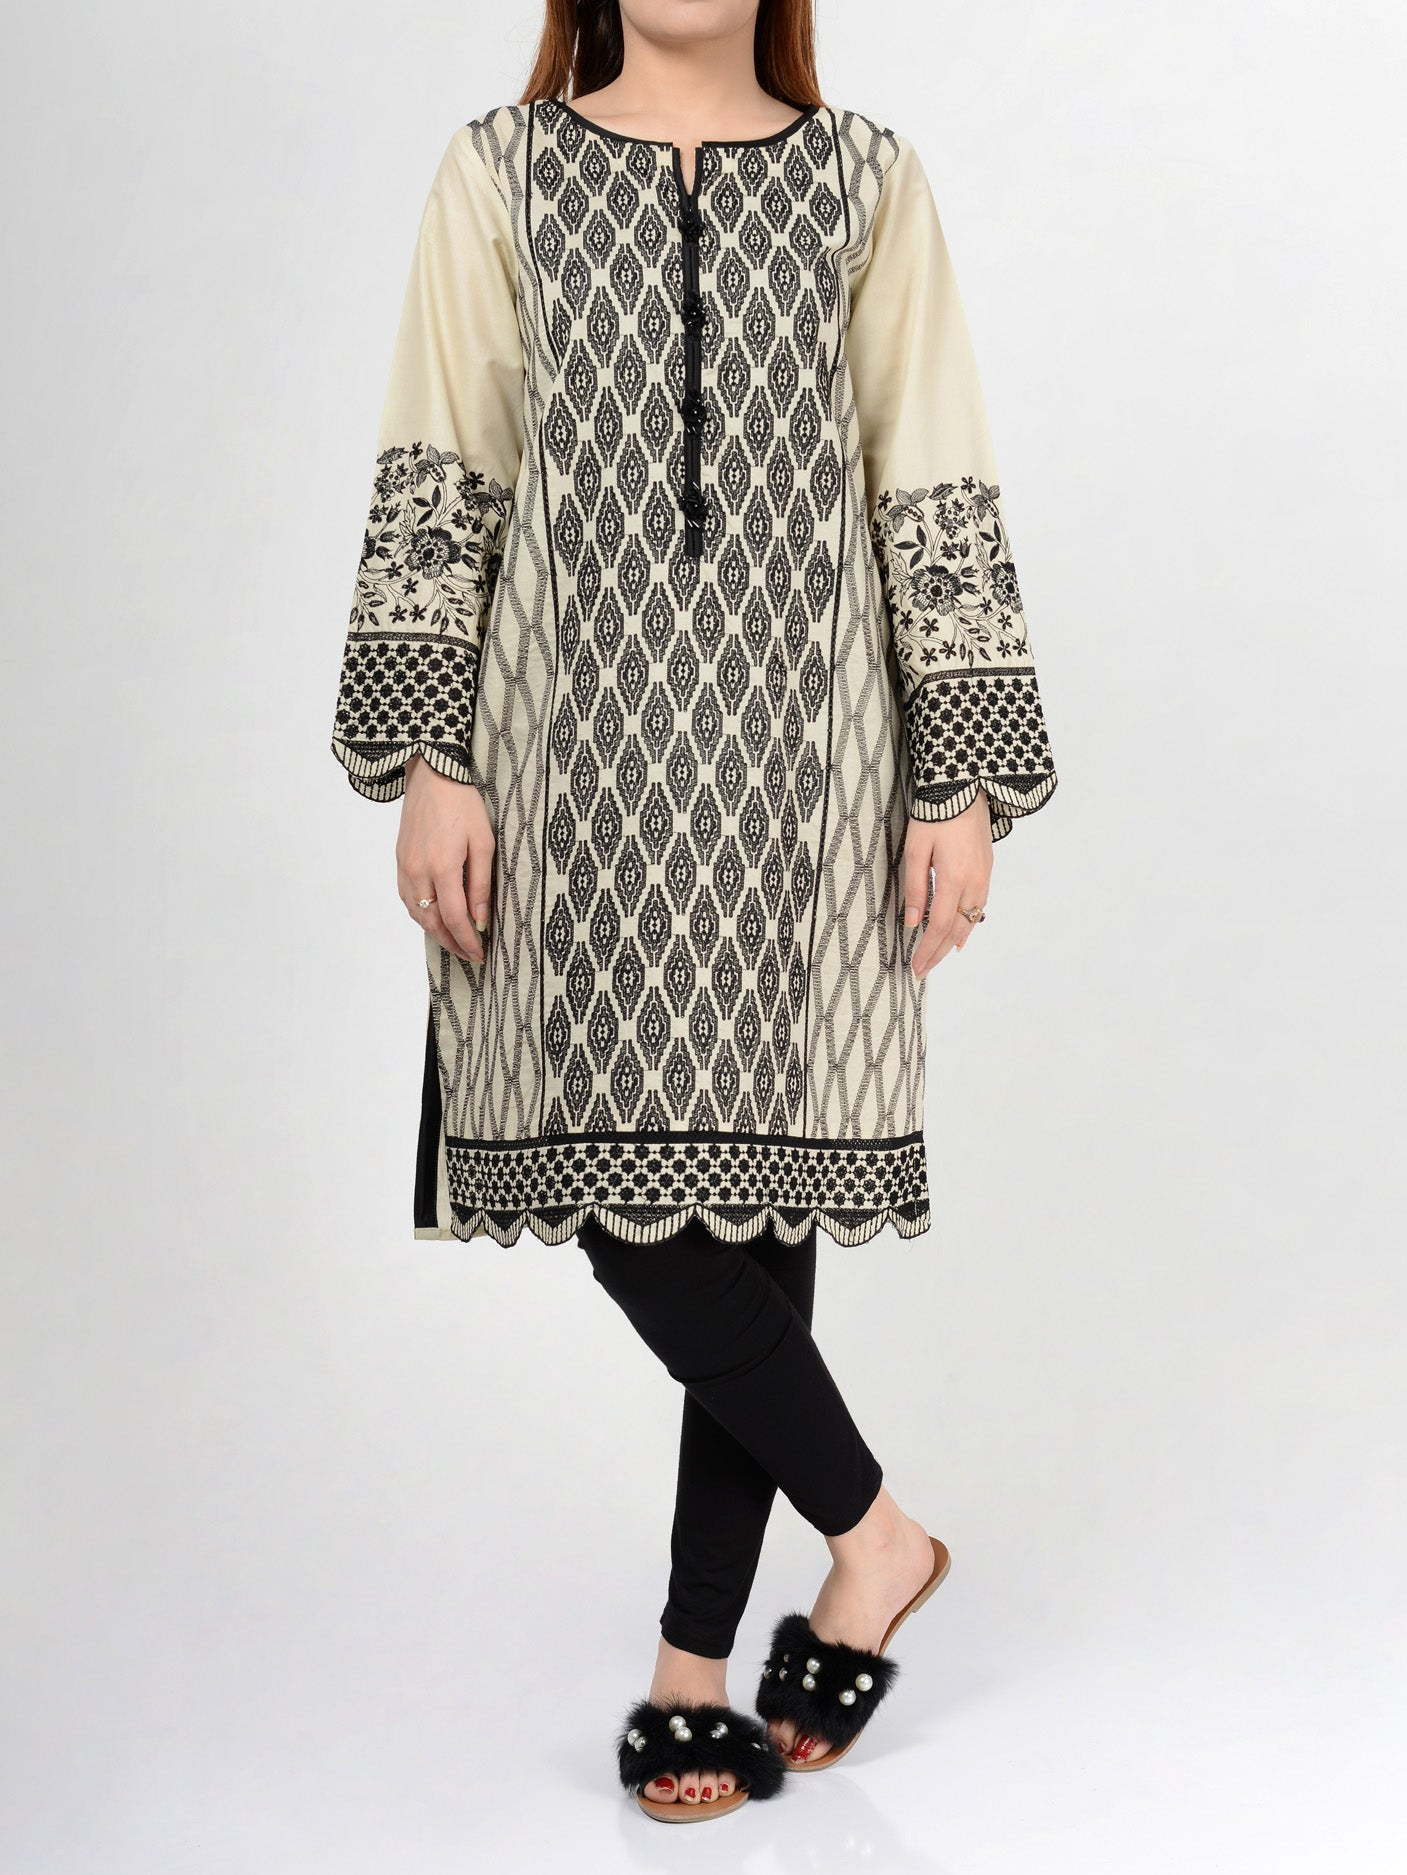 Pret Embroidered Lawn Shirt F0504 Online